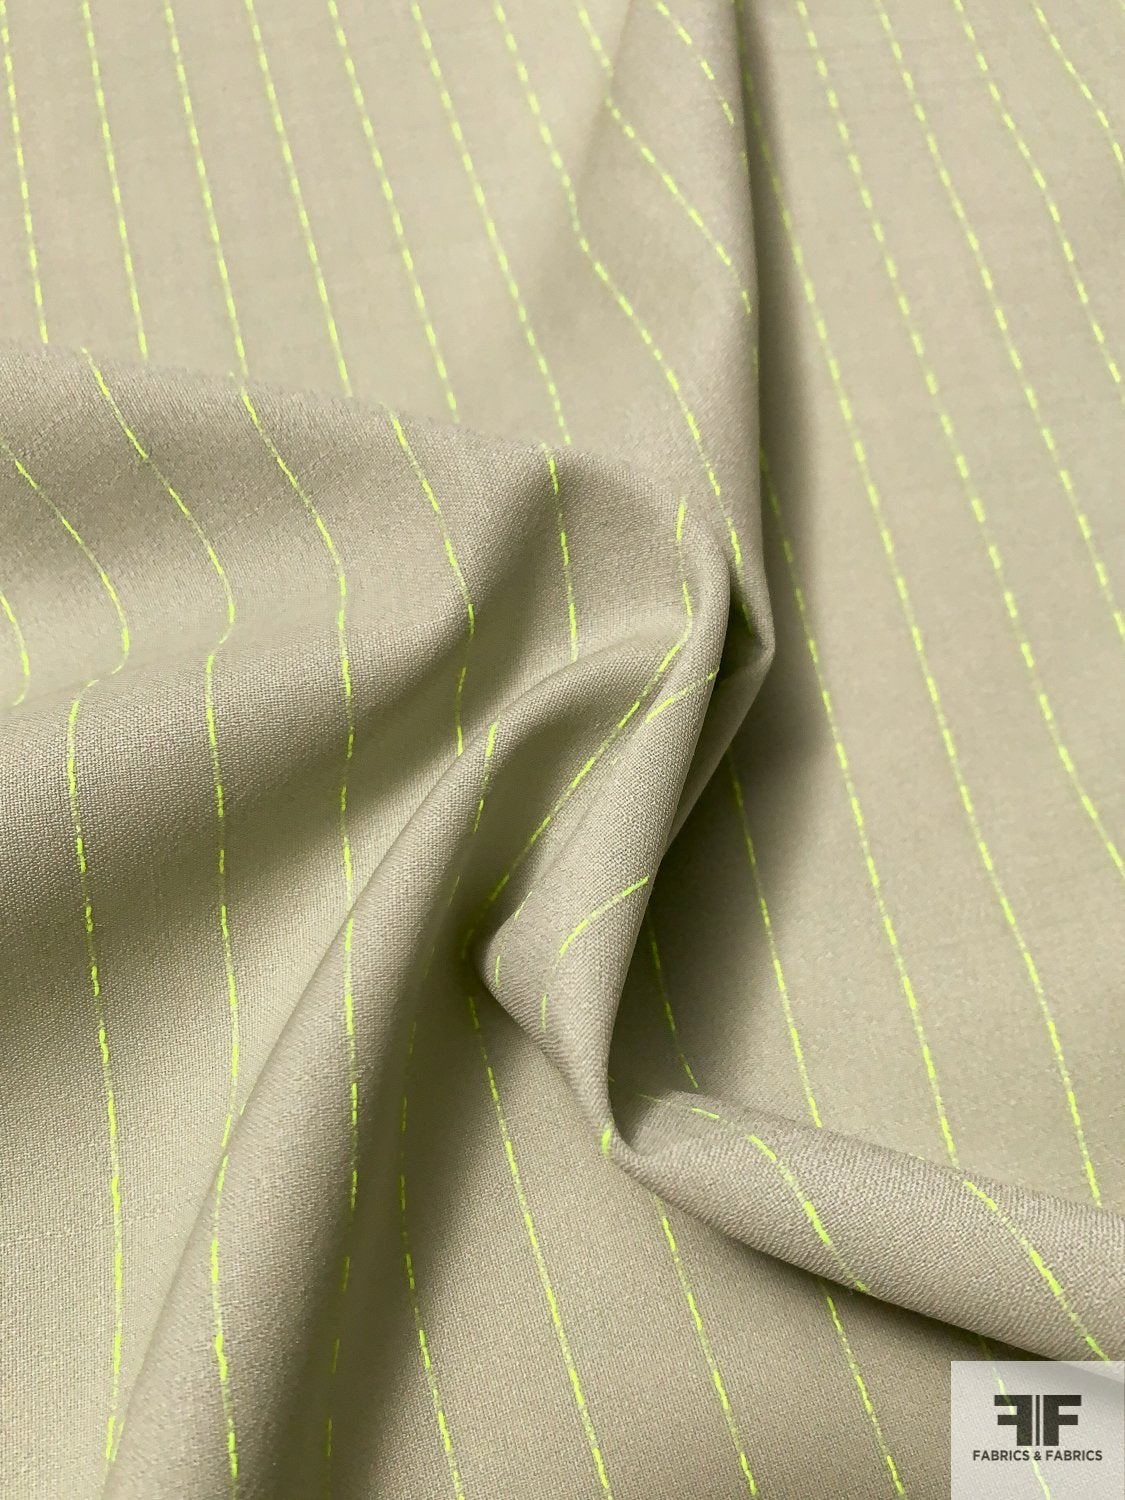 Made in Italy Virgin Wool Blend Suiting with Finely Woven Stripes - Light Sage / Neon Green